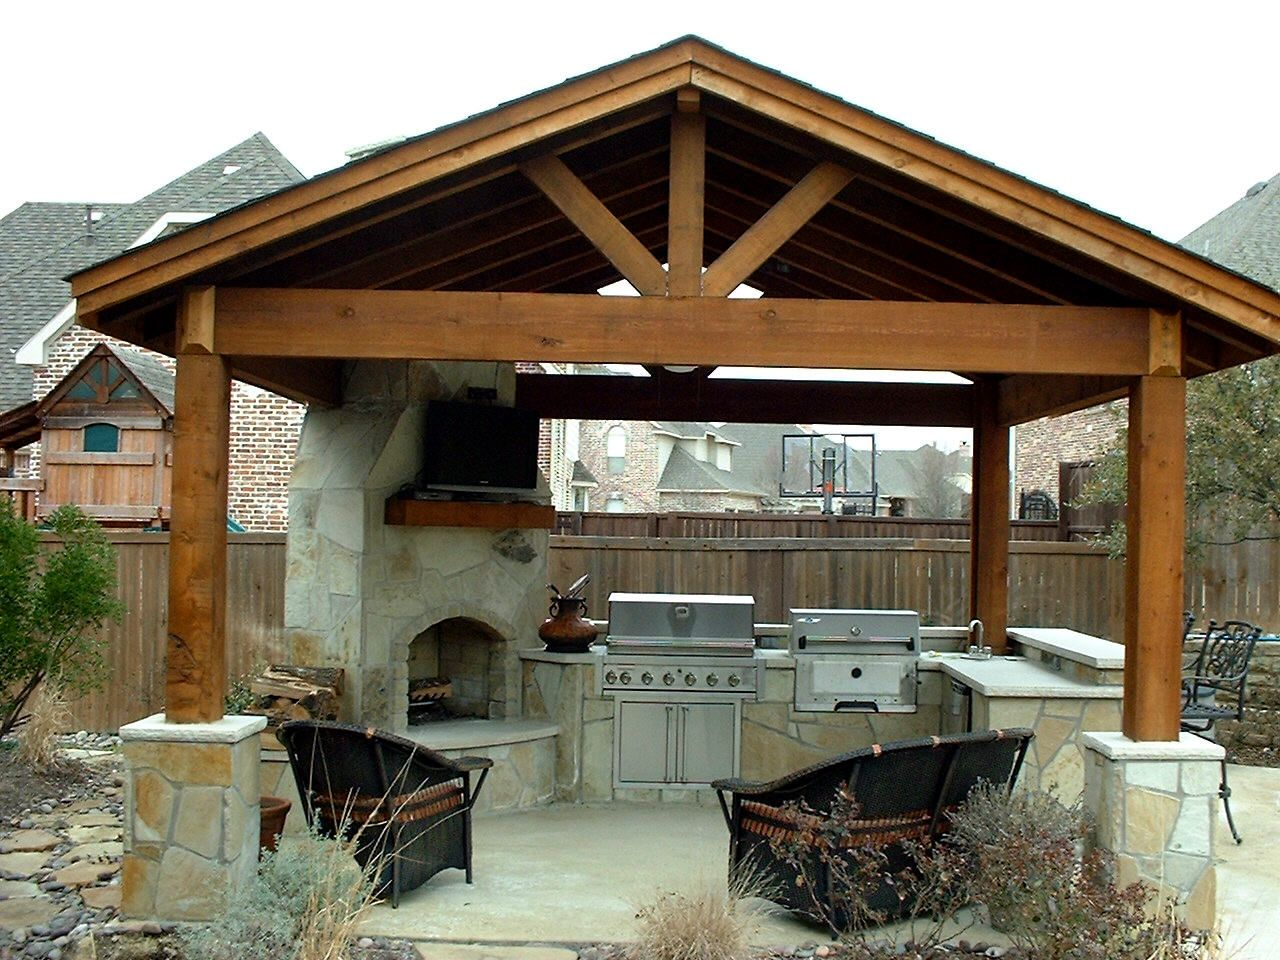 Uncategorized Design Outdoor Kitchen best 10 outdoor kitchen design ideas on pinterest patio idea